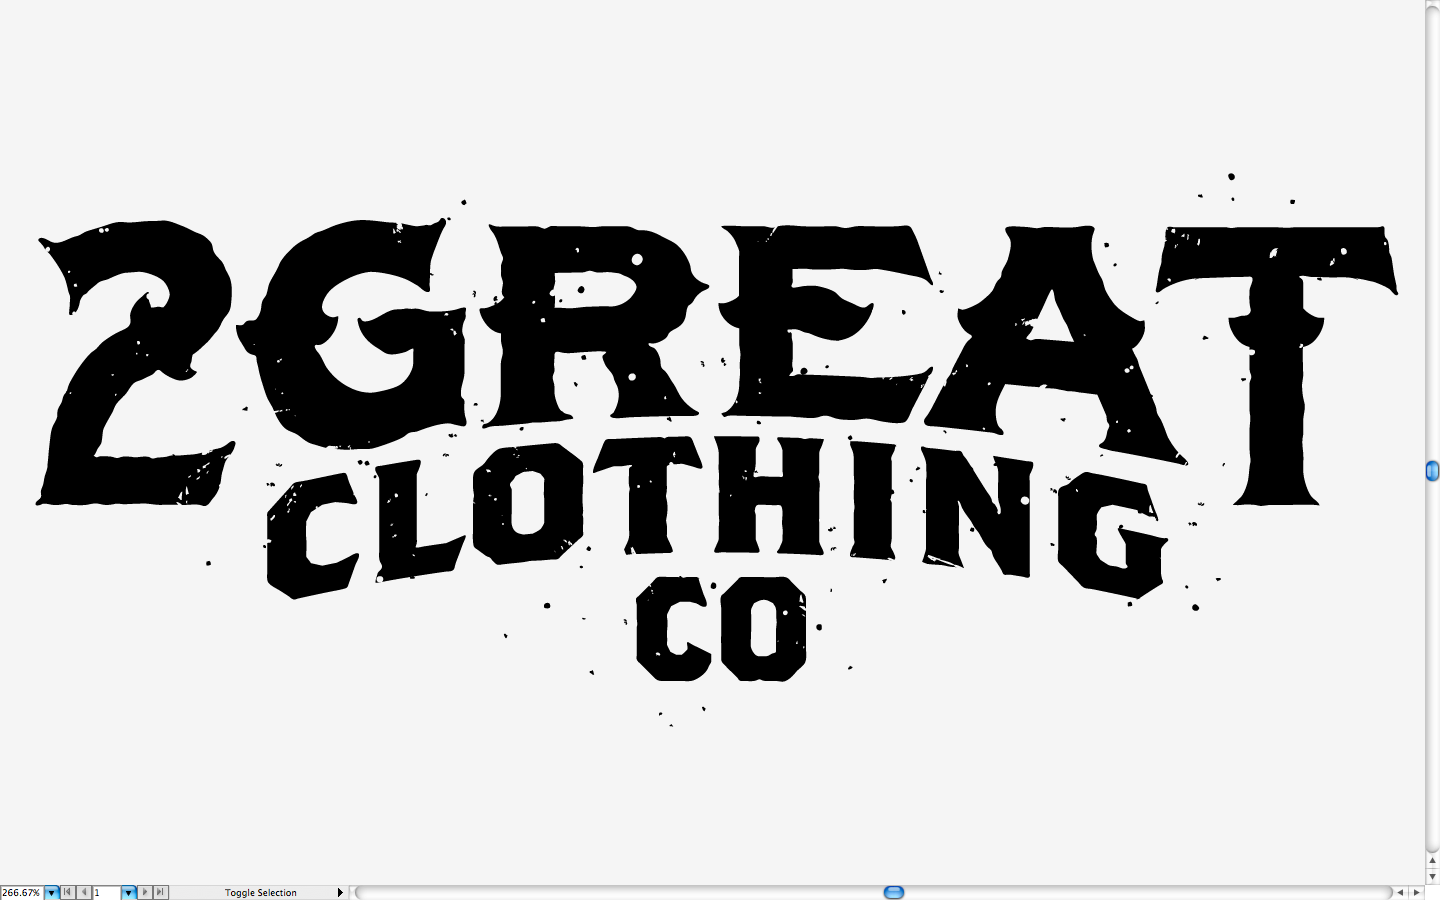 2Great Clothing Co. - image 27 - student project